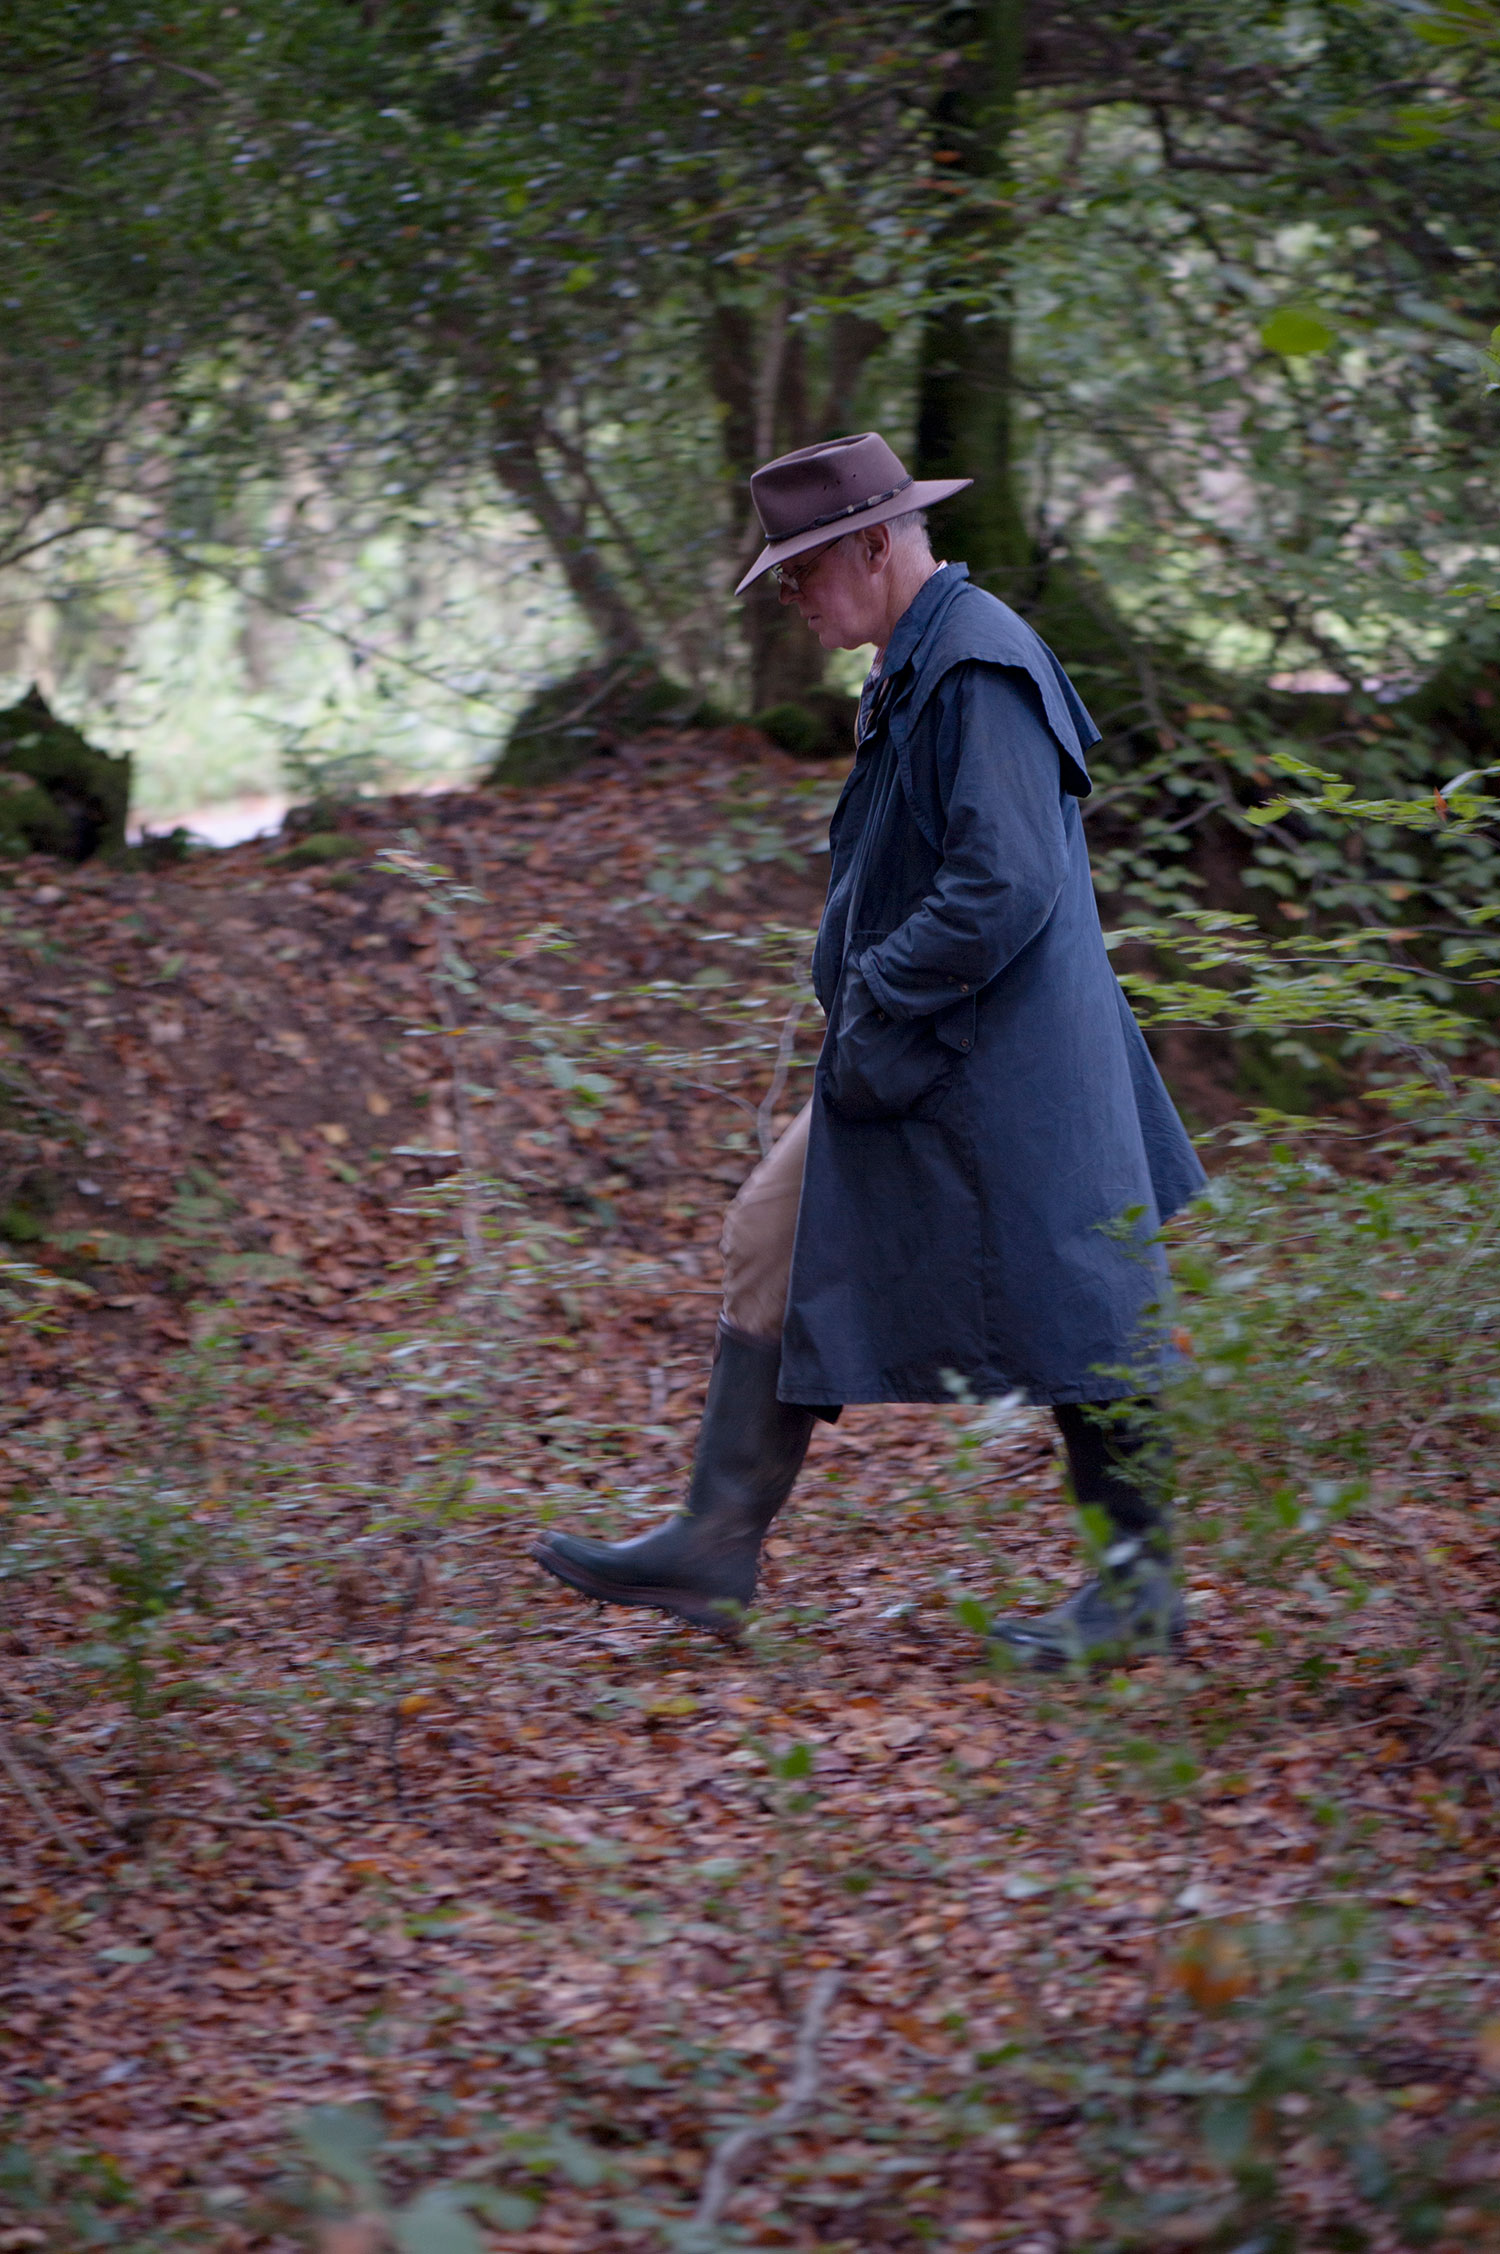 River-Cottage-HQ-mushrooming-foraging-with-John-Wright-(9).jpg